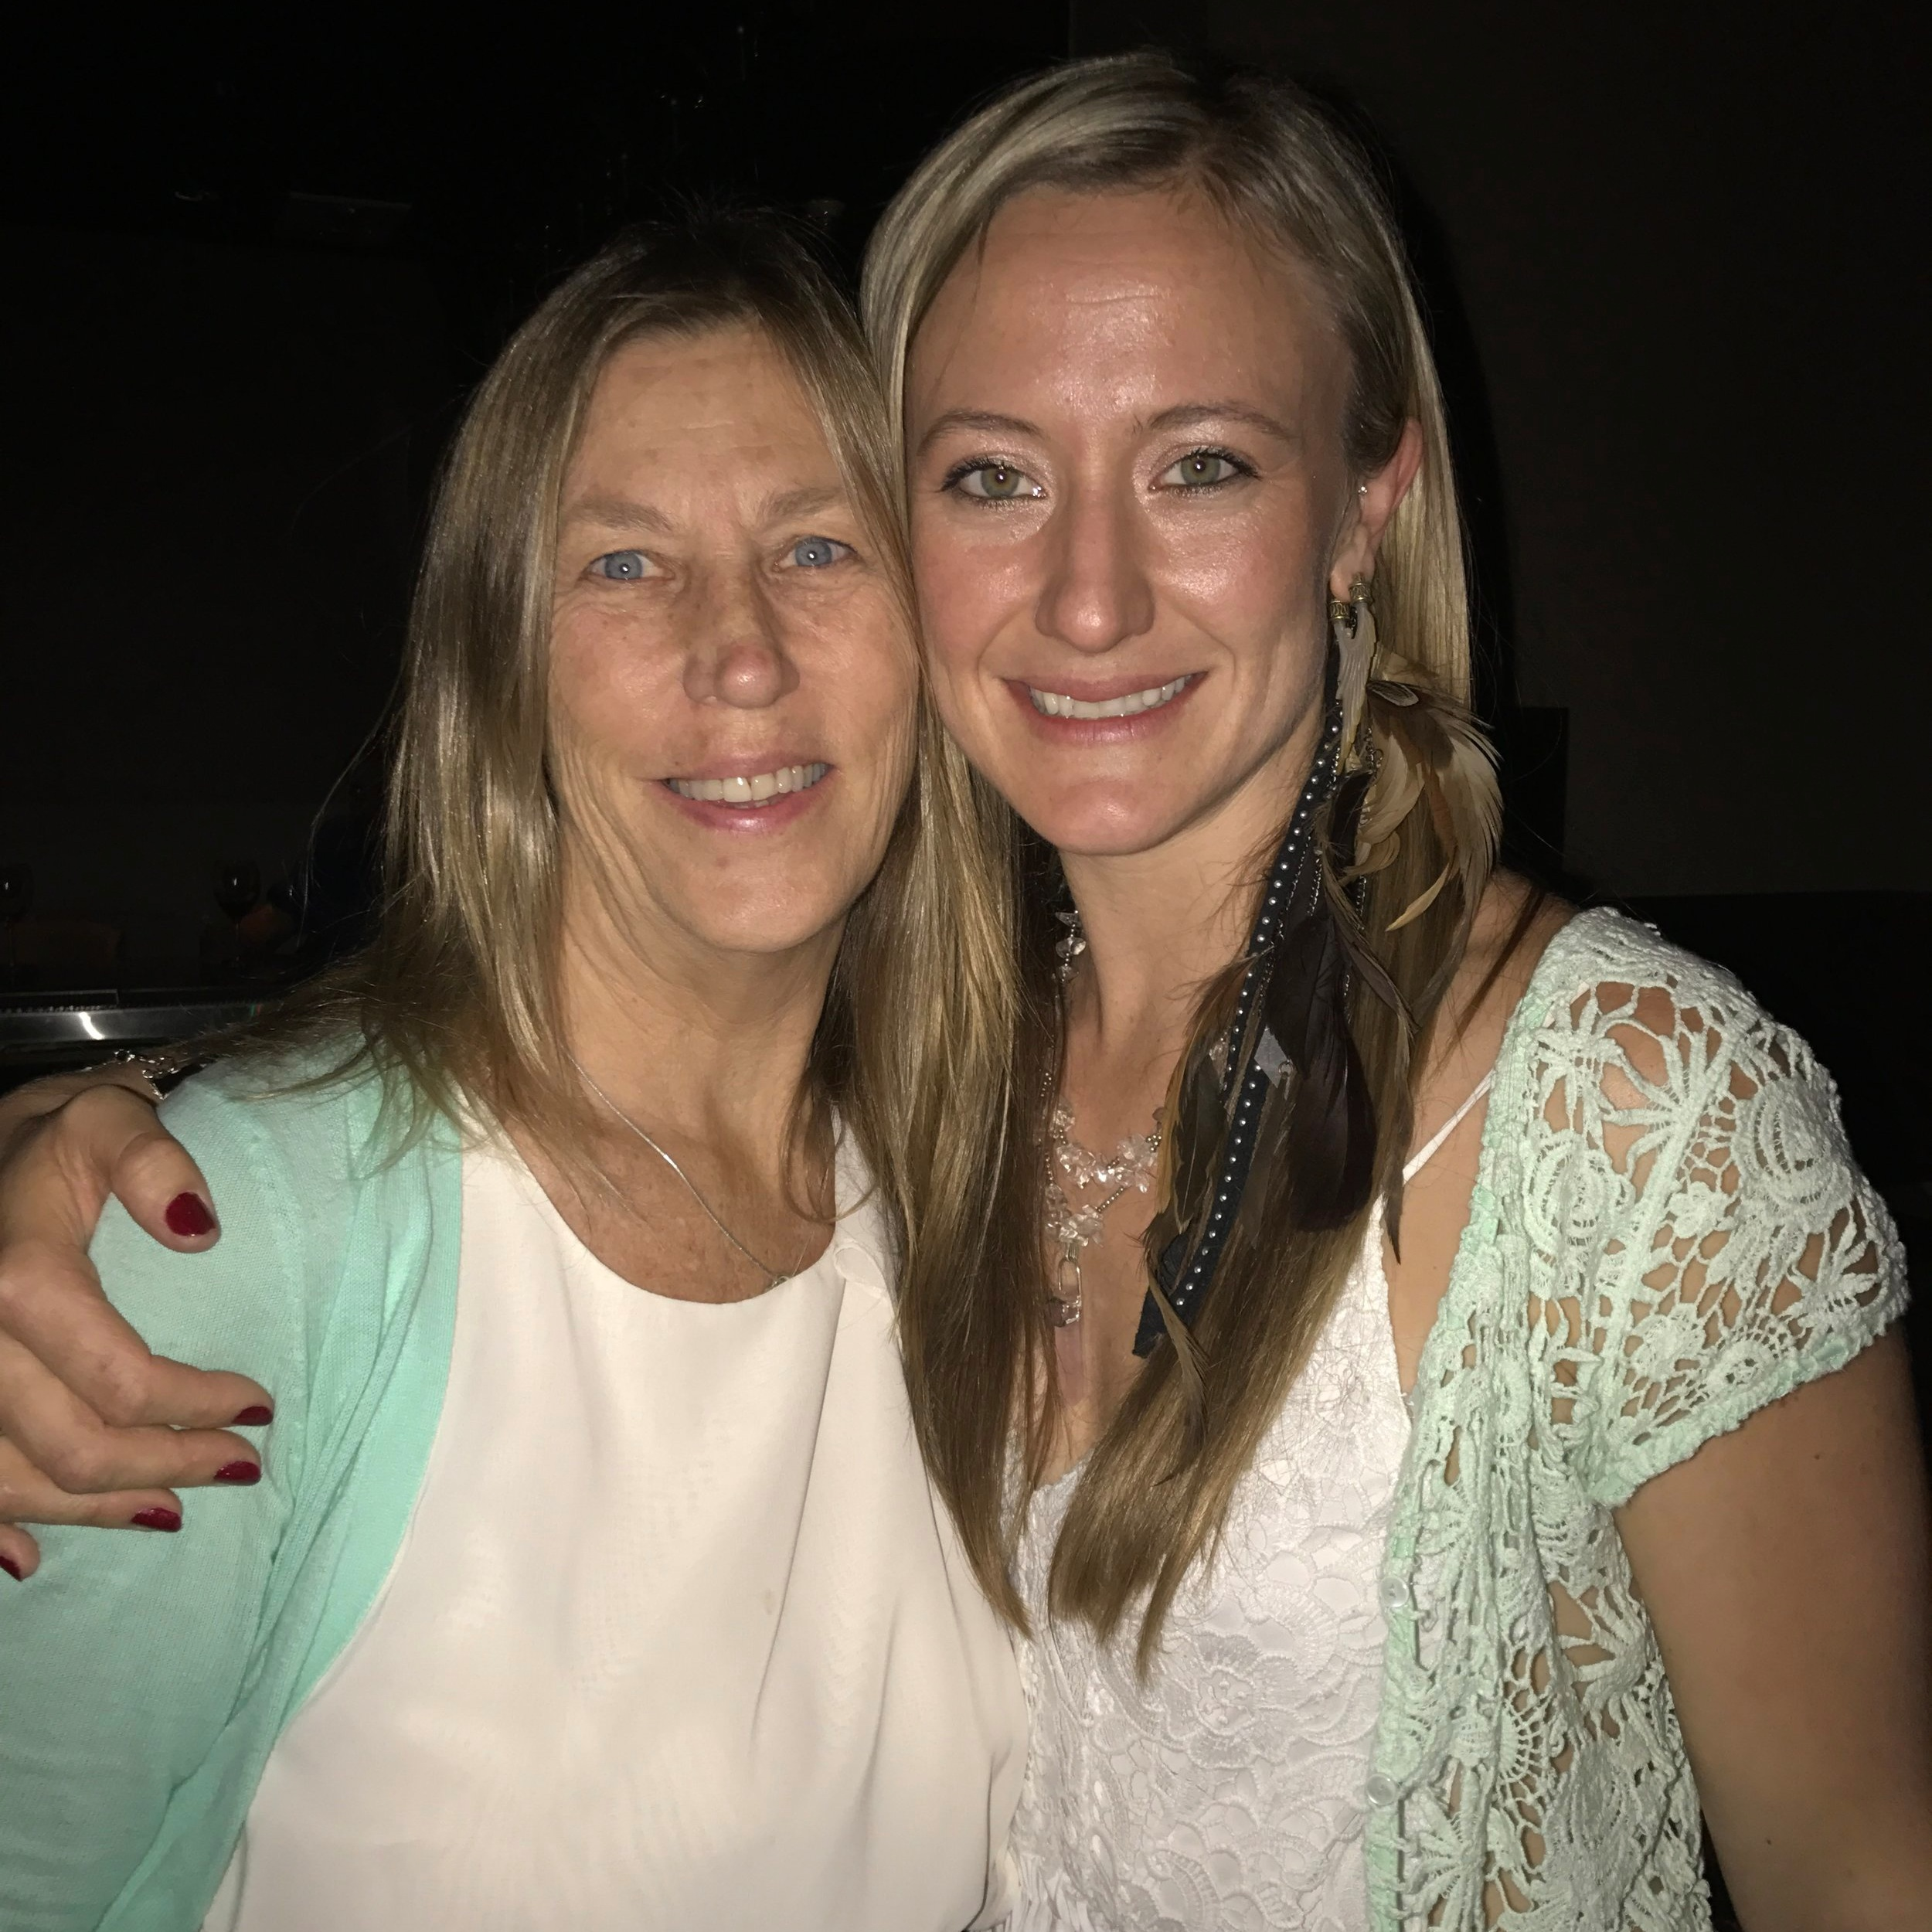 MOM &BESTFRIEND - Kristianne's mom is the most amazing woman anyone will ever know. Creating and caring for so many, her mom shines unbounded heart centered compassion in everything she does; thus, a vision for a better planet and community was the foundation of Krisitanne's family ETHICS.